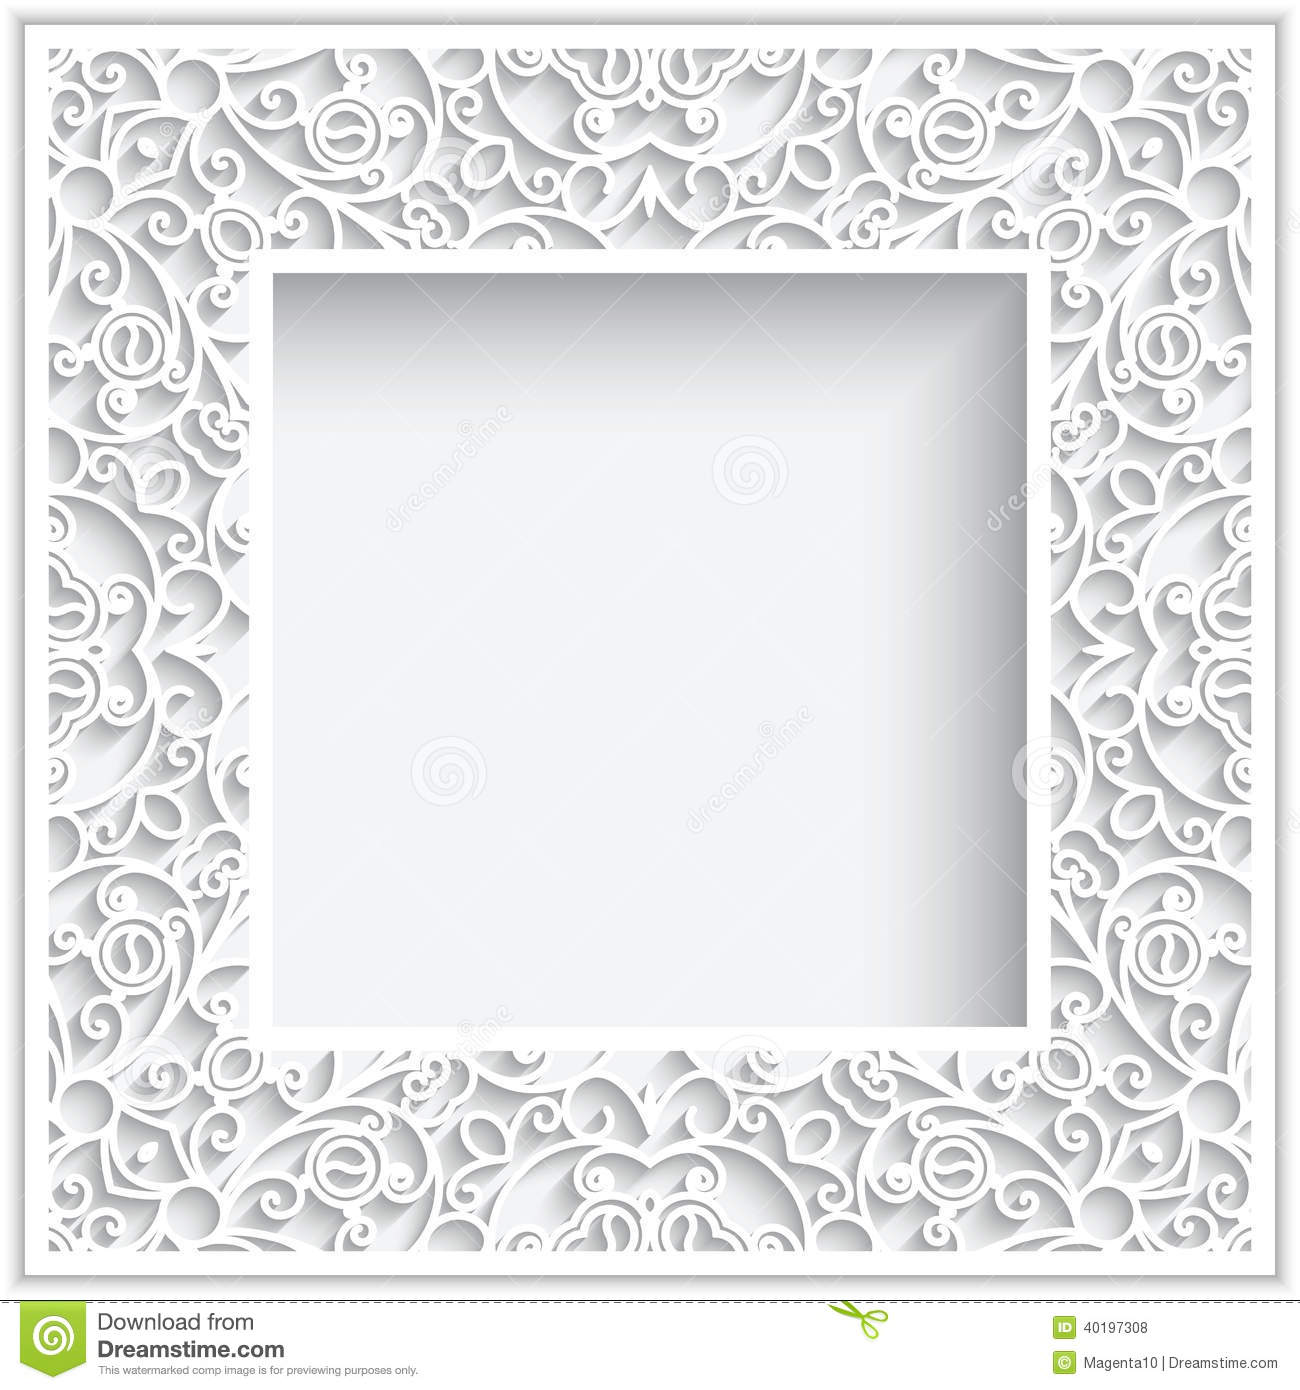 Square paper frame stock vector. Illustration of cutout - 40197308